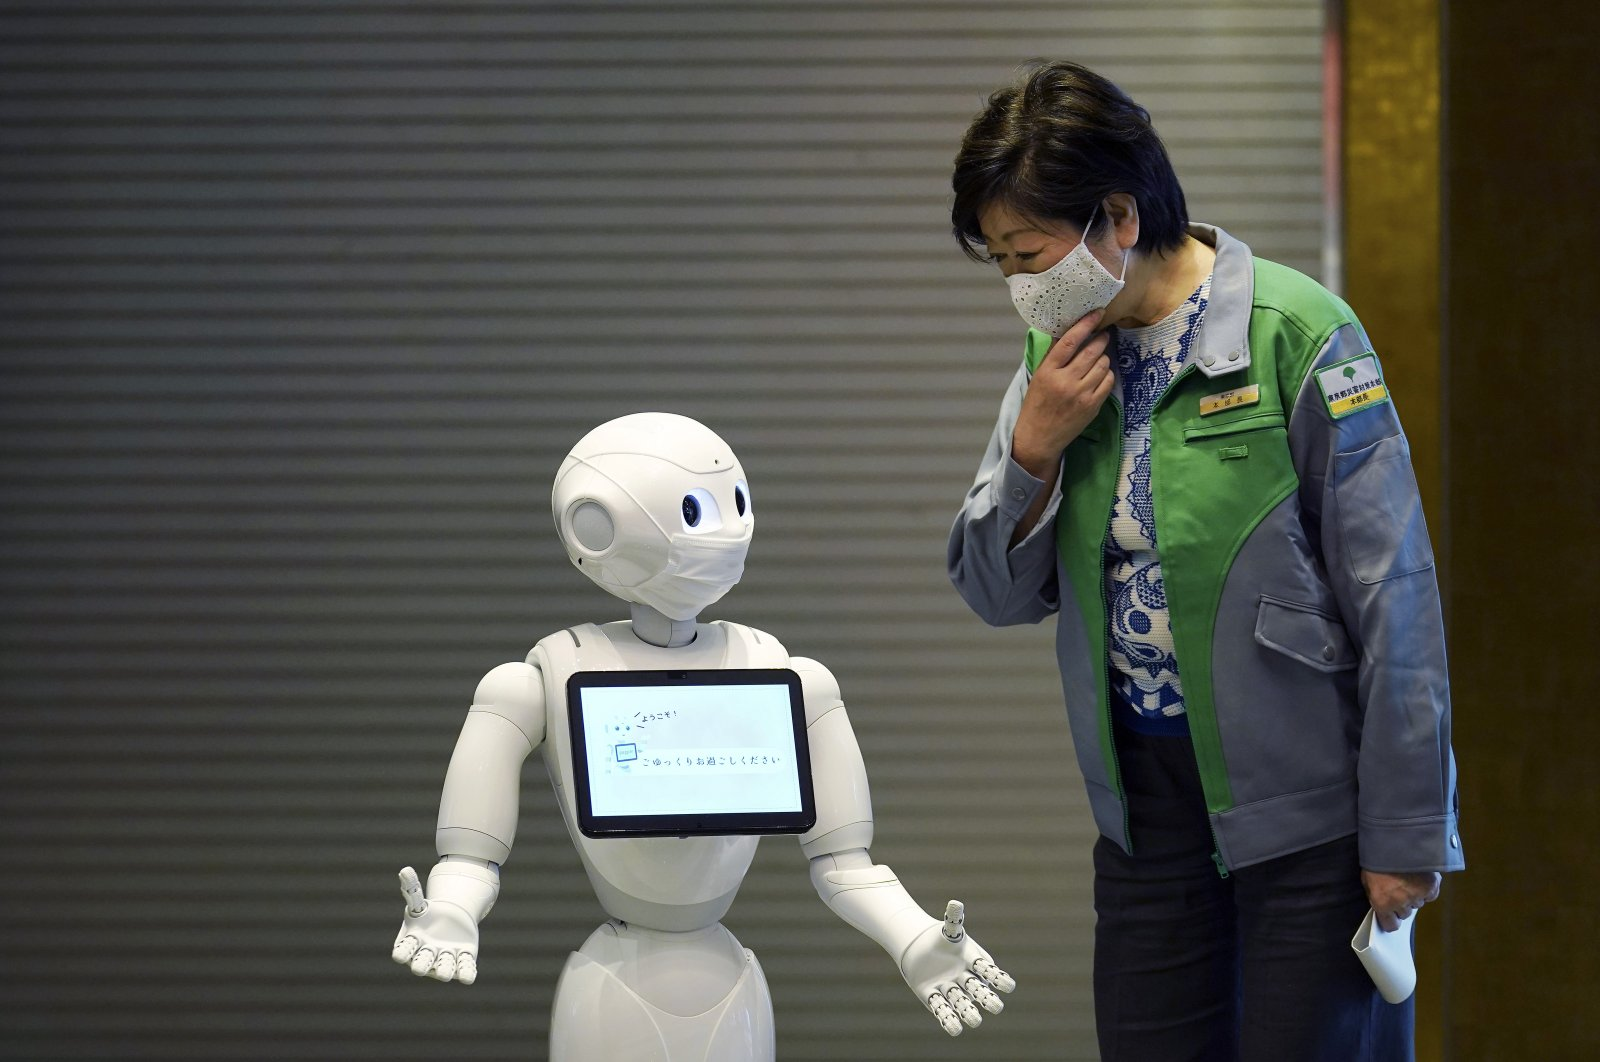 A humanoid robot Pepper wearing a face mask greets Tokyo Gov. Yuriko Koike at the lobby of a hotel for COVID-19 patients with mild symptoms during a media preview in Tokyo, Japan, Friday, May 1, 2020. (AP Photo)